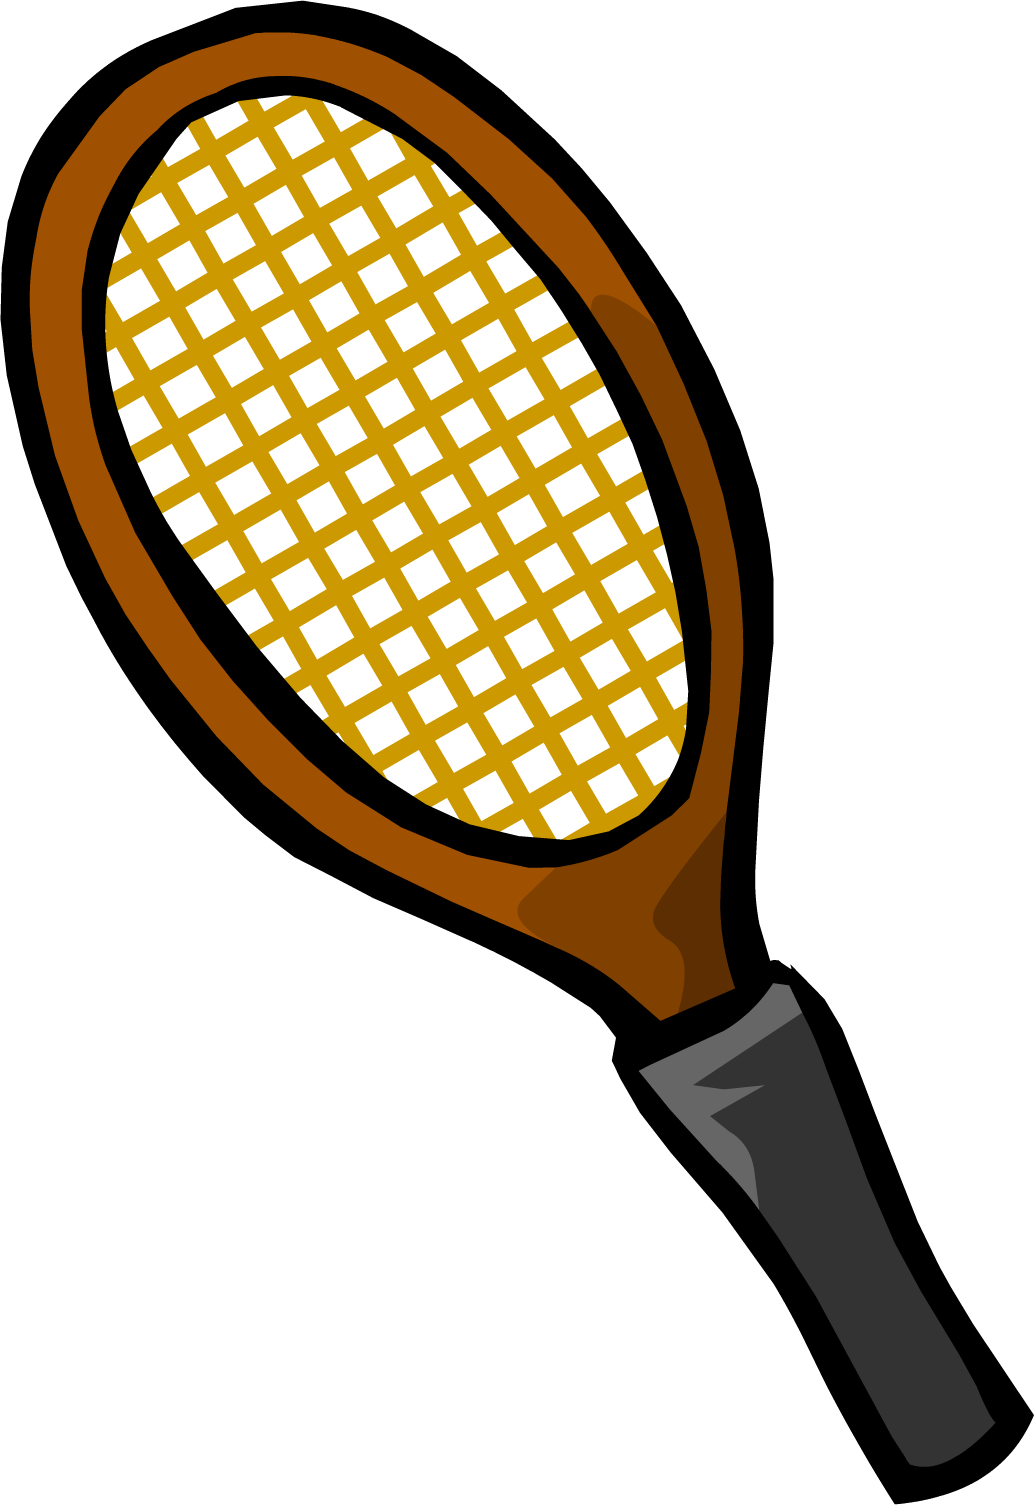 Image  Tennis Racket icon  Club Penguin Wiki  The free